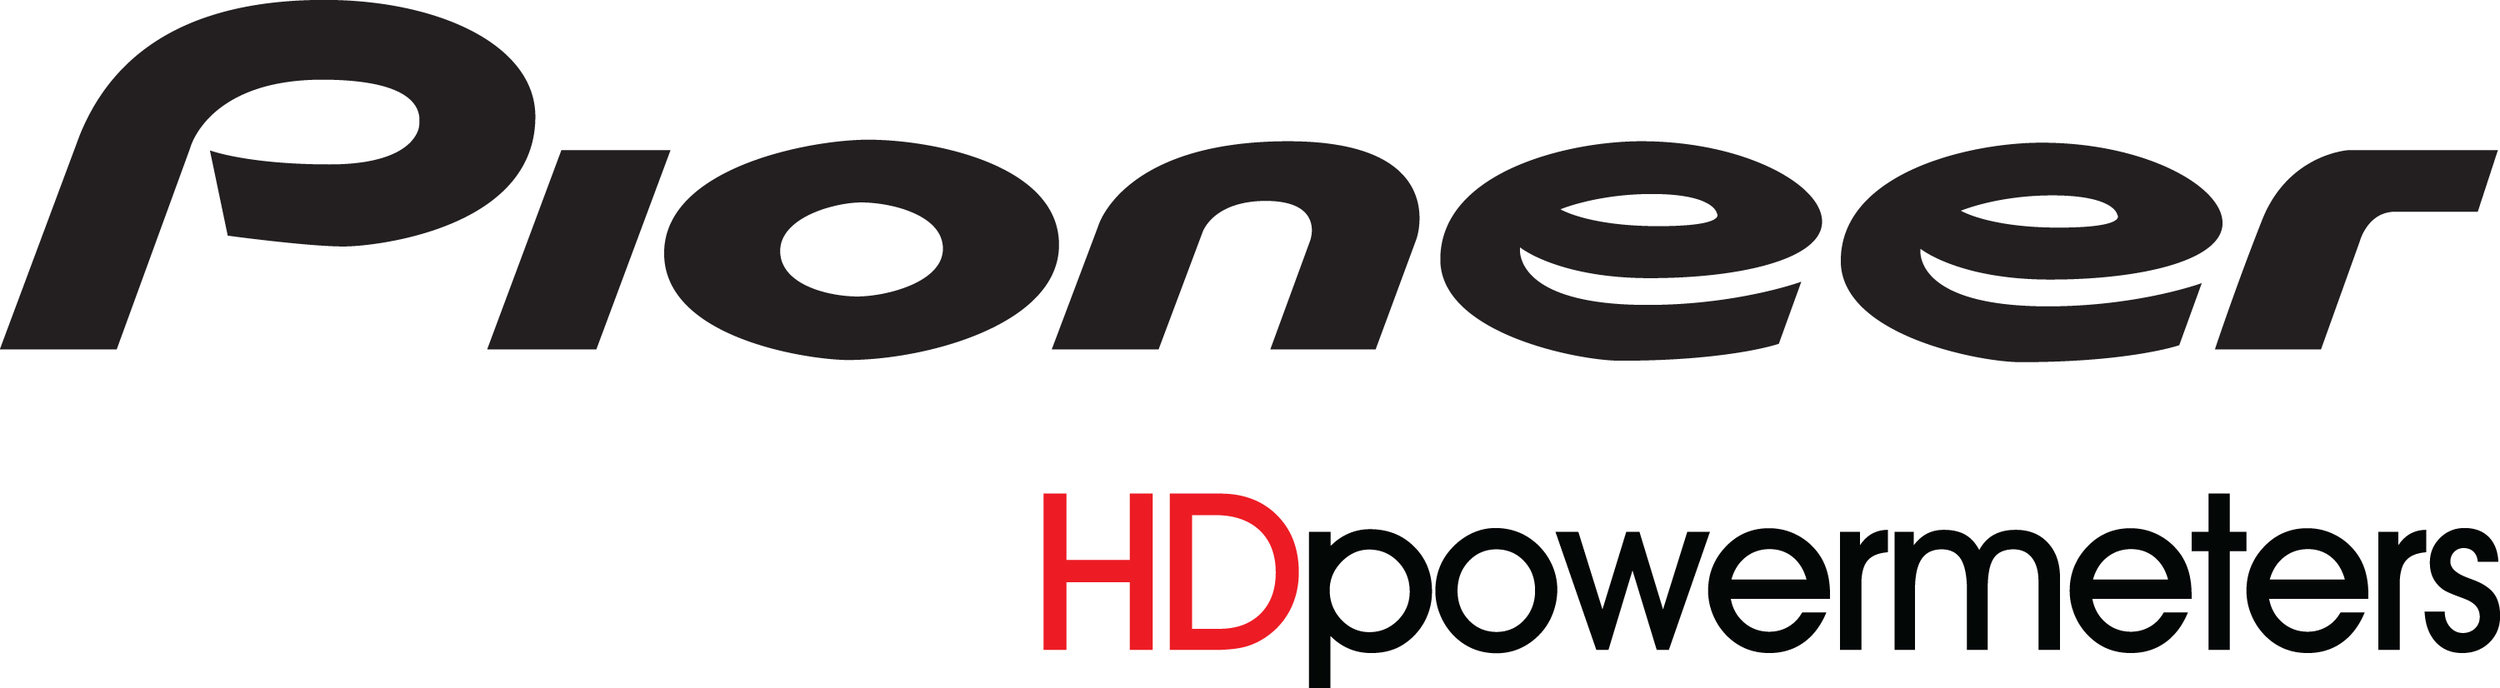 Pioneer HDpowermeters Logo_white_background.jpg